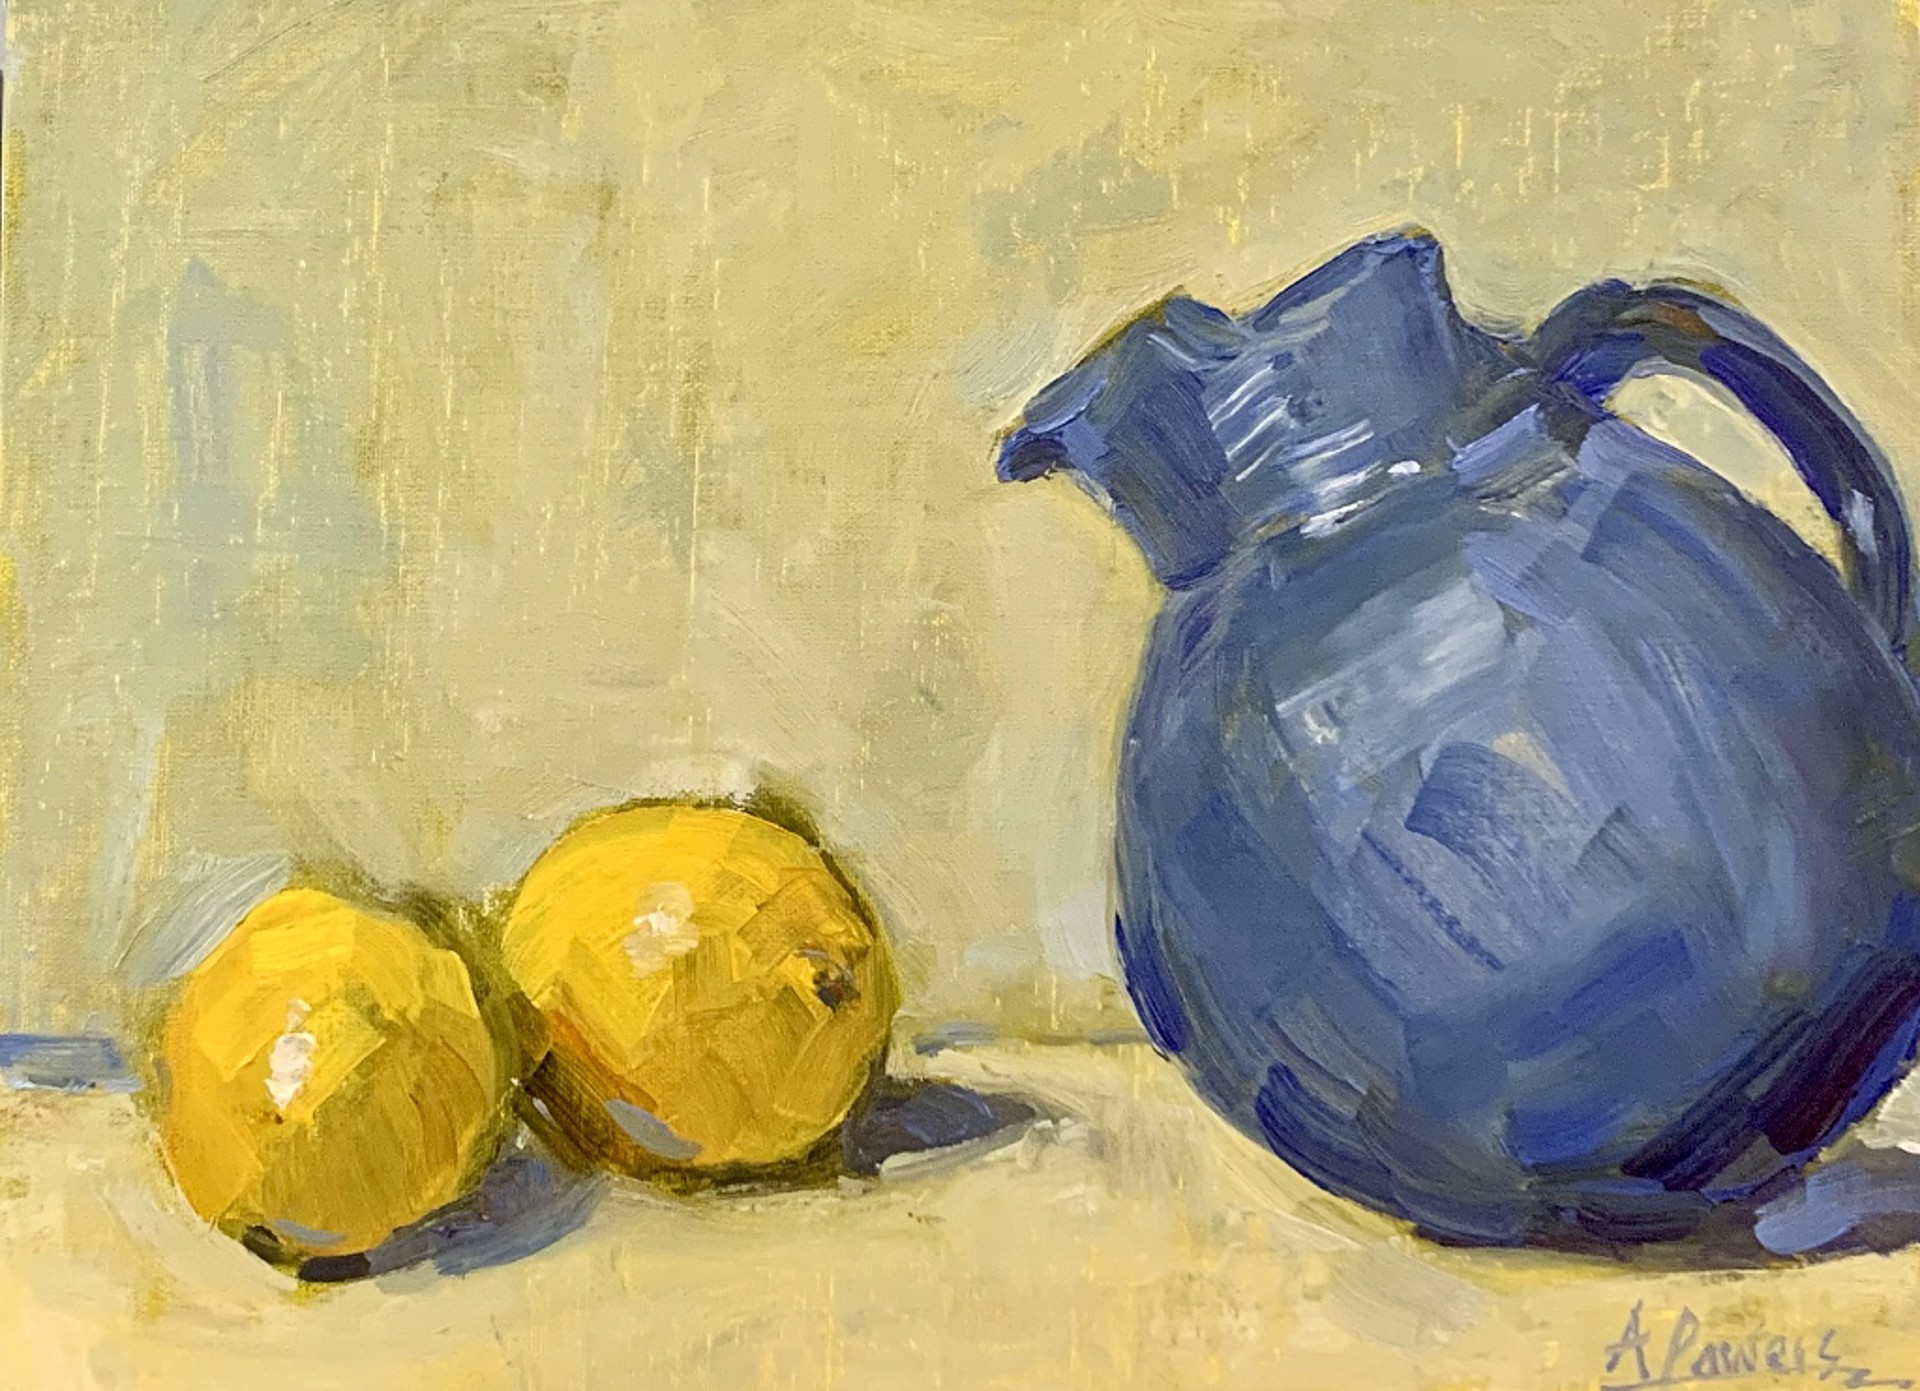 When Life Gives You Lemons by Angela Powers